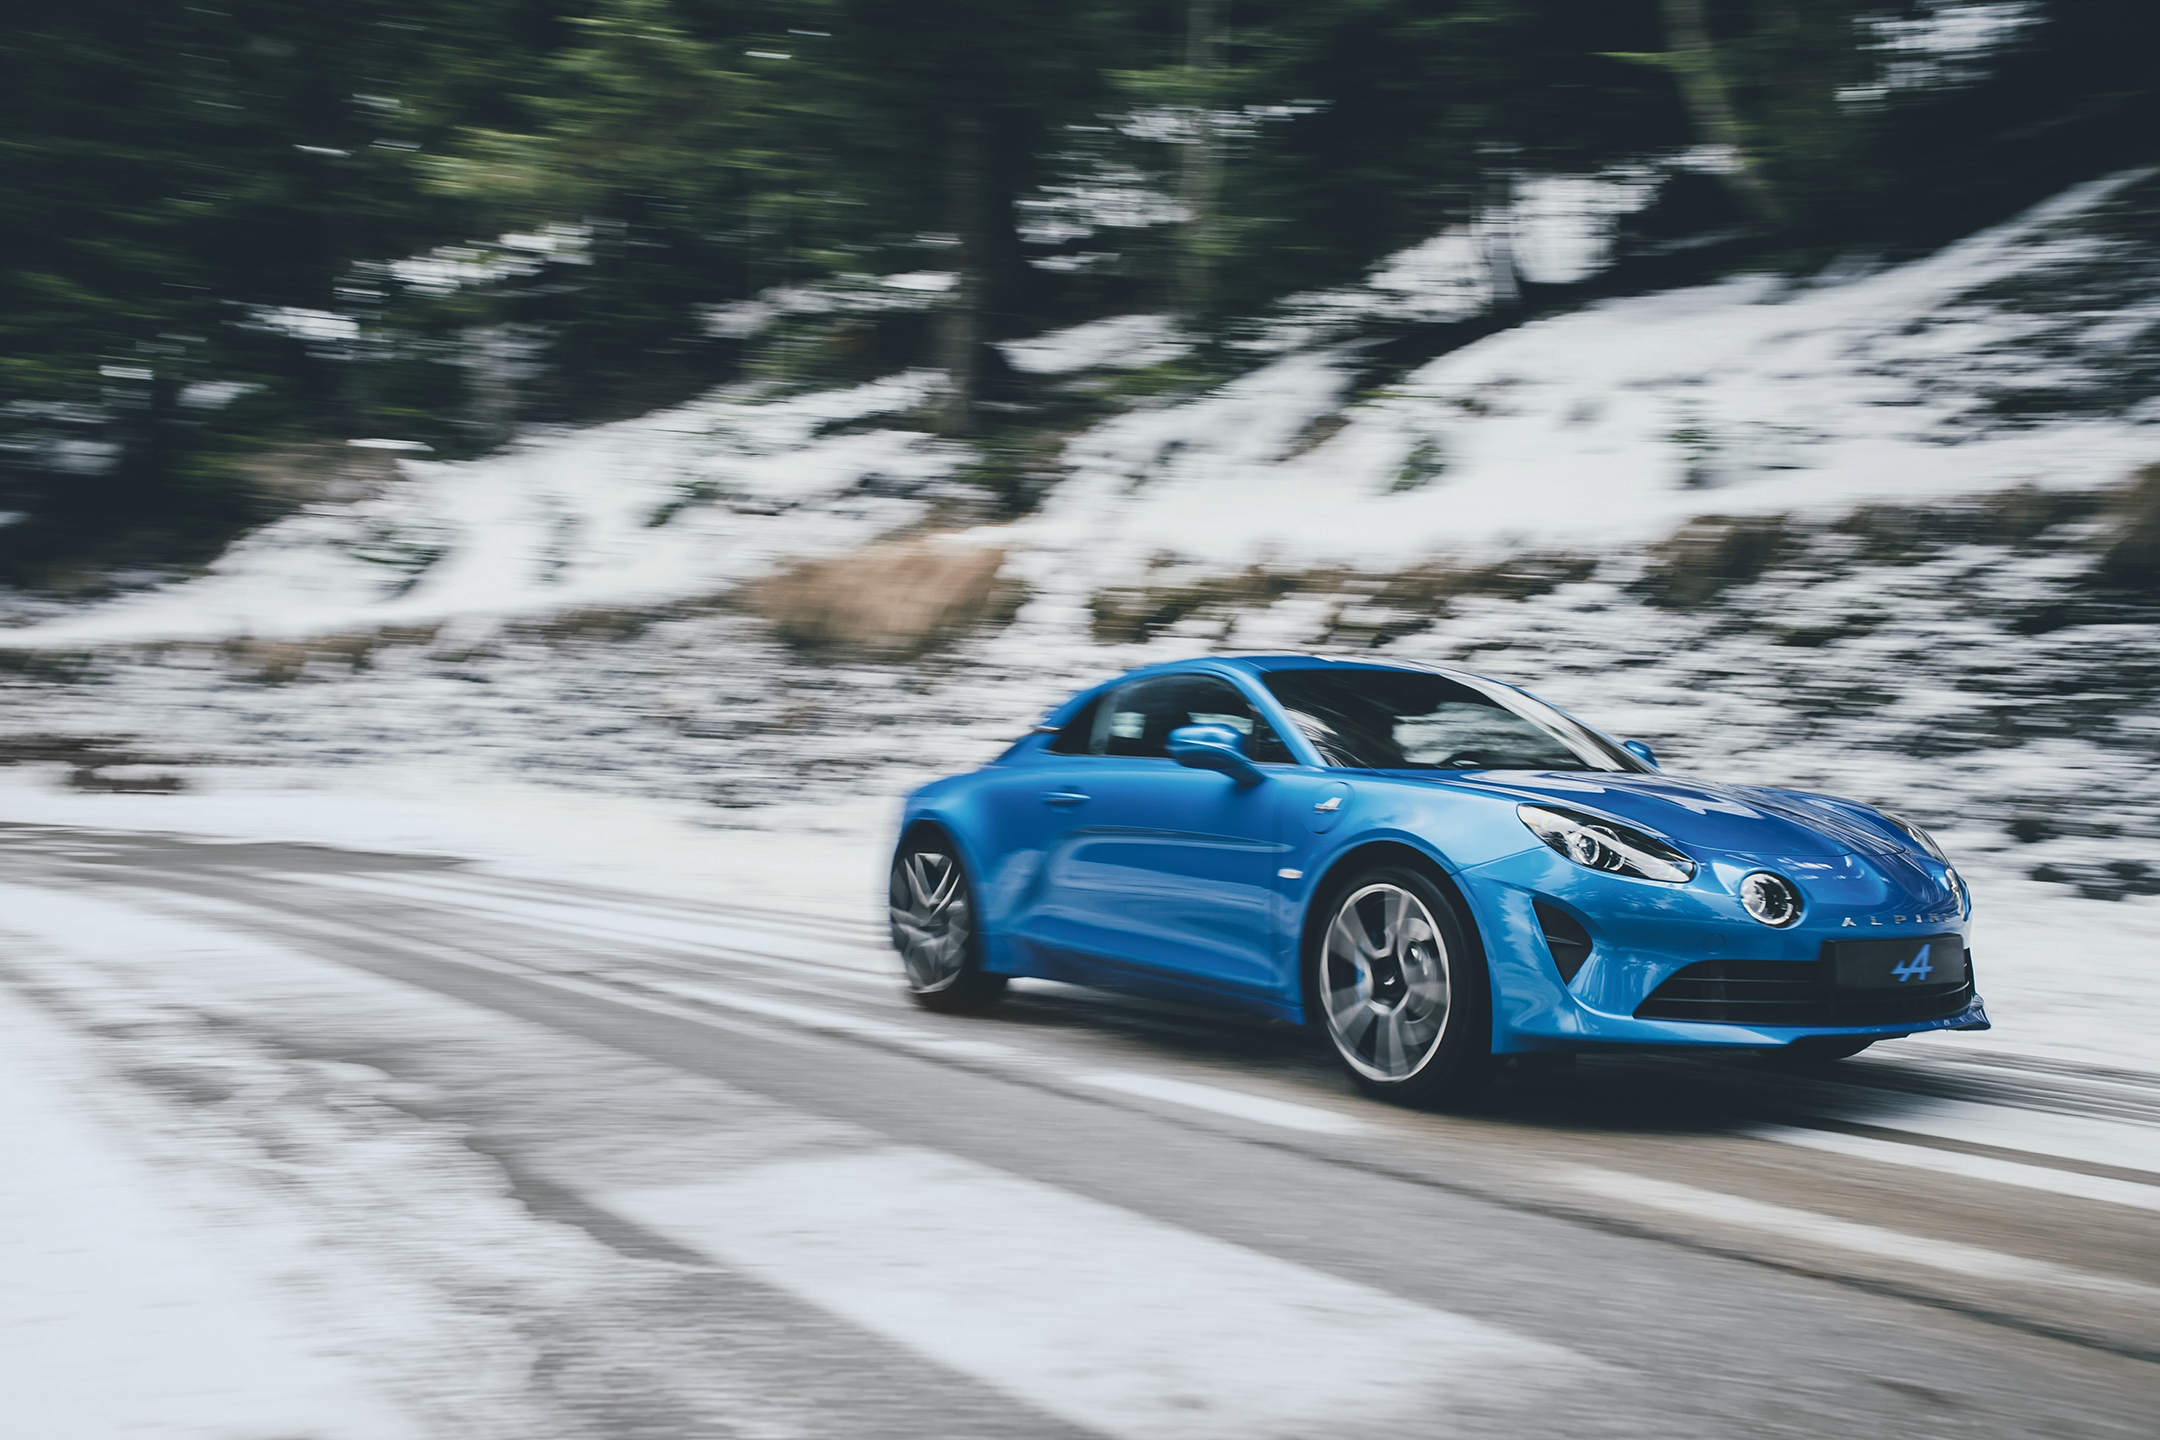 Alpine A110 - 2017 - front - photo Turini